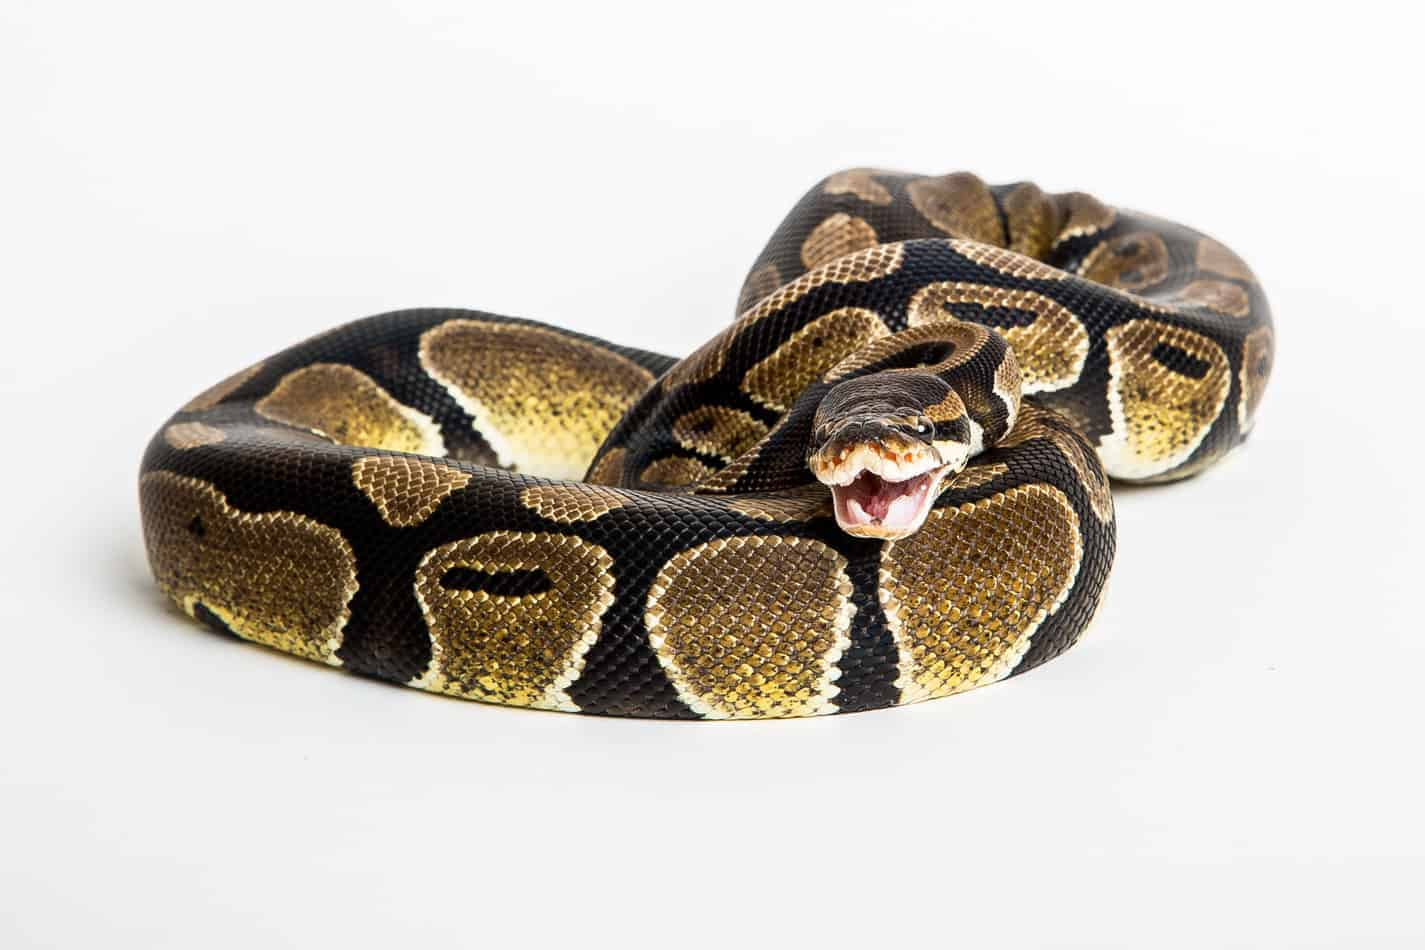 Ball Python Care: Everything a Beginner Should Know